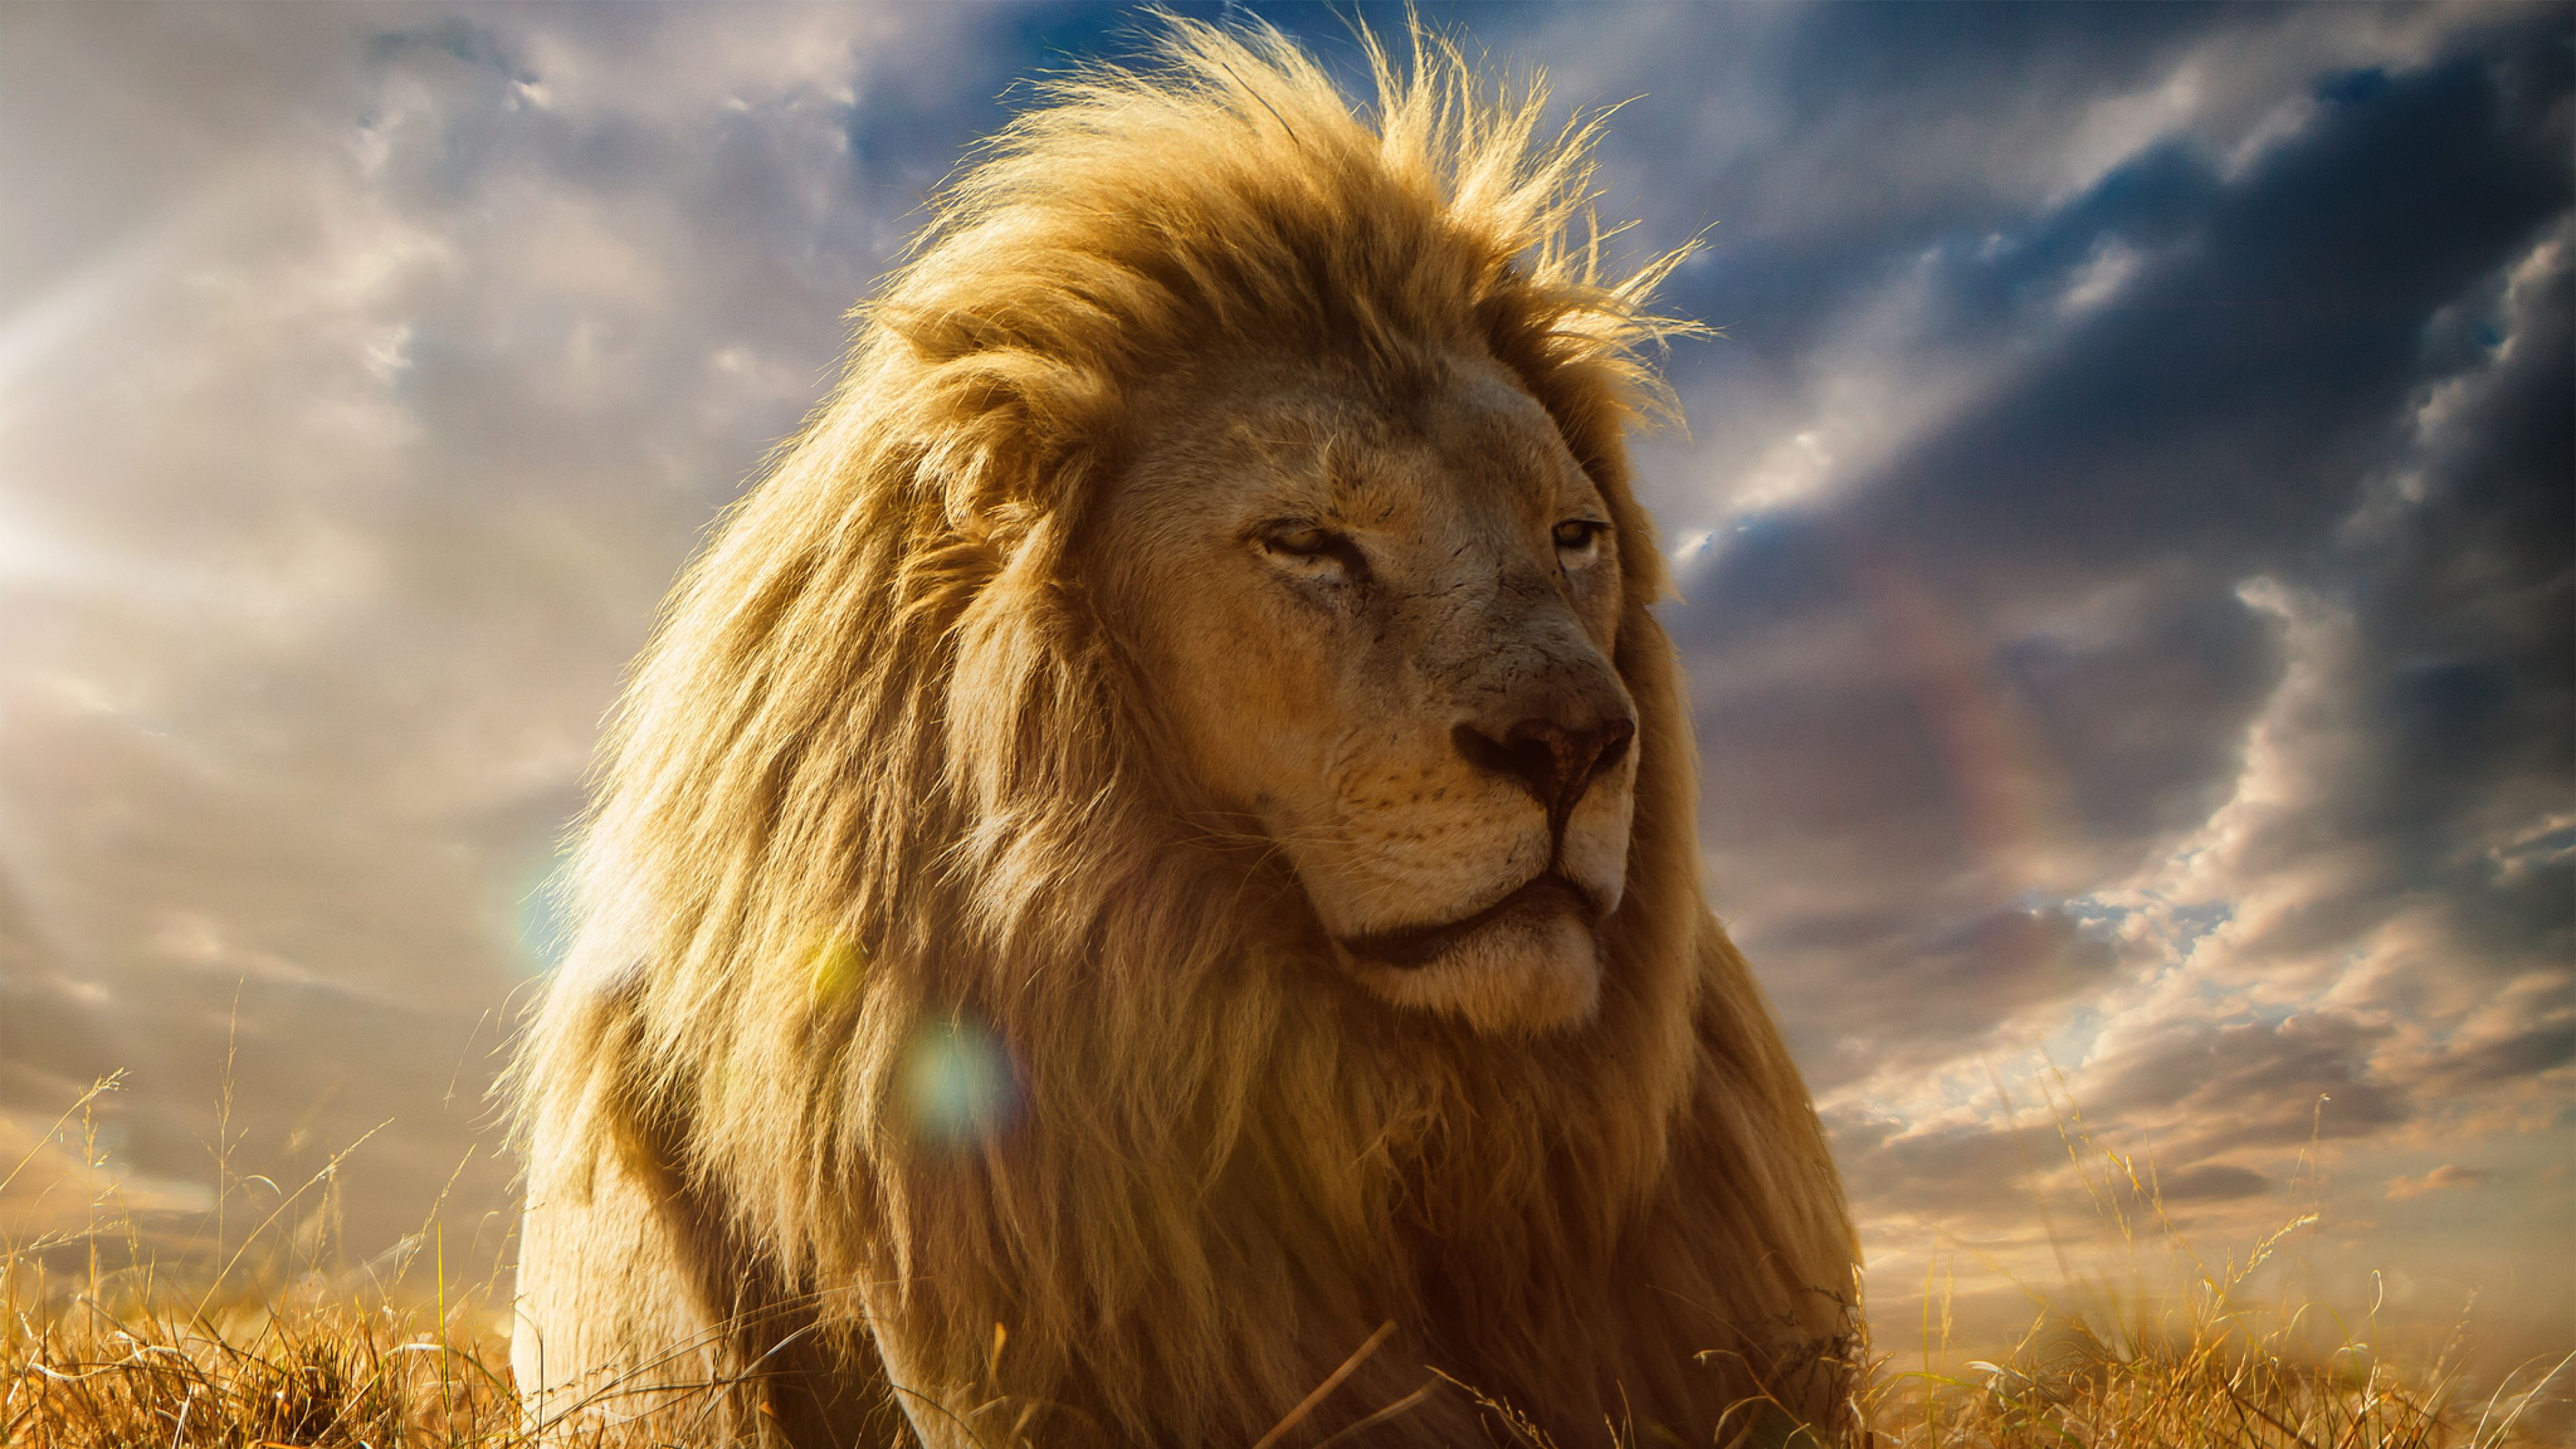 K Ultra HD Lion Wallpapers HD Desktop Backgrounds x